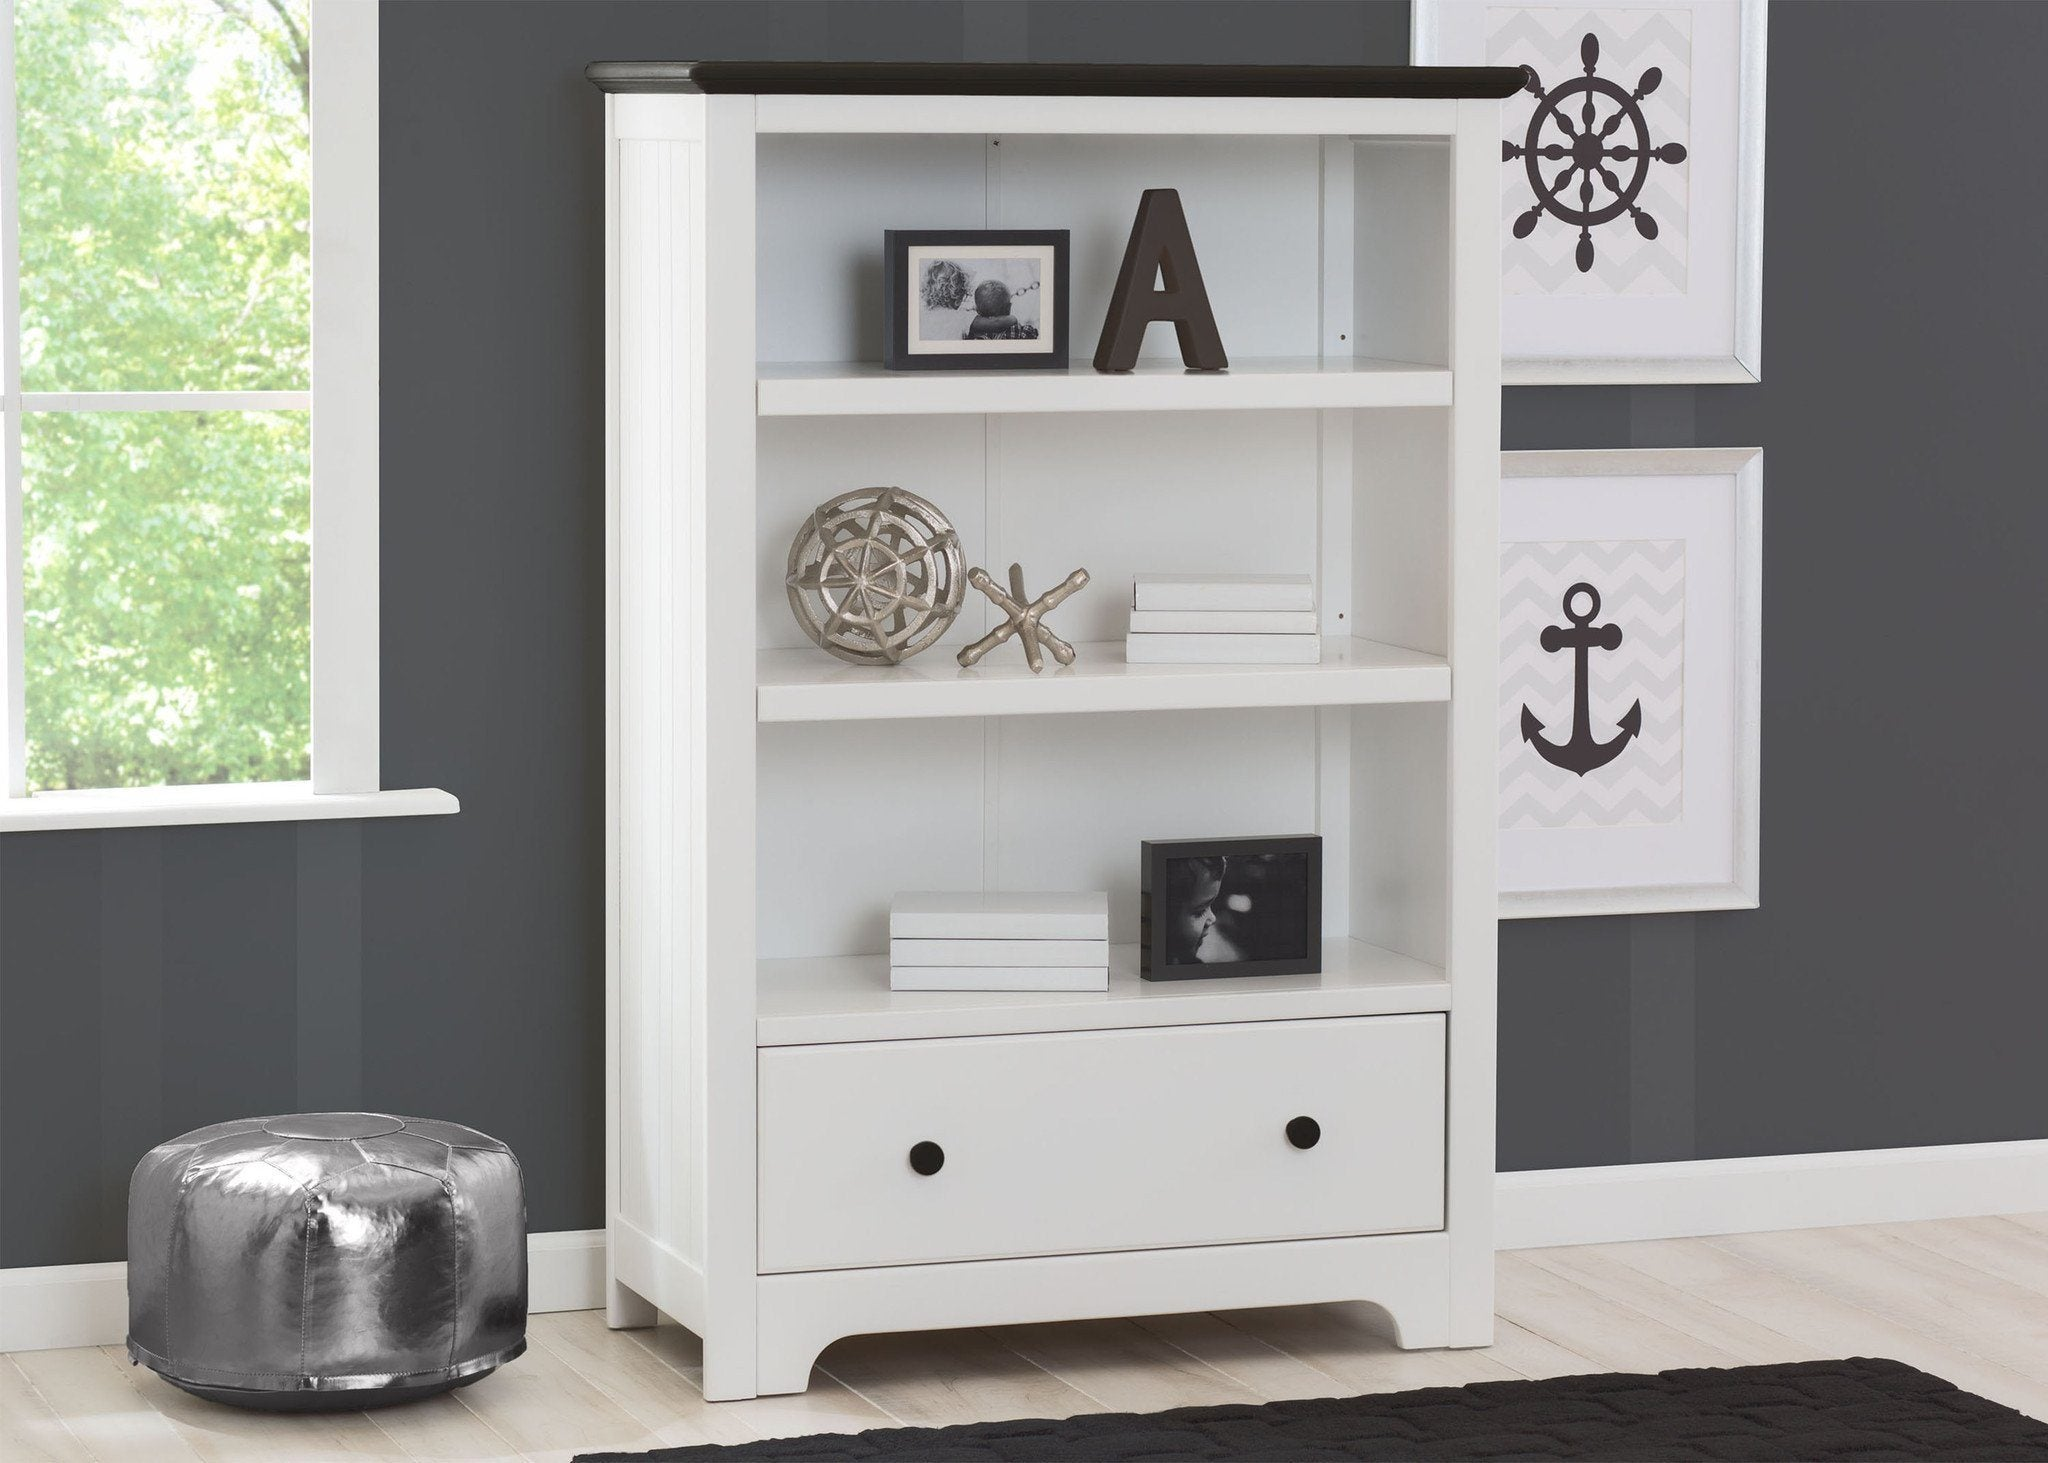 Delta Children Bianca With Rustic Ebony 135 Providence Bookcase Drawer Room